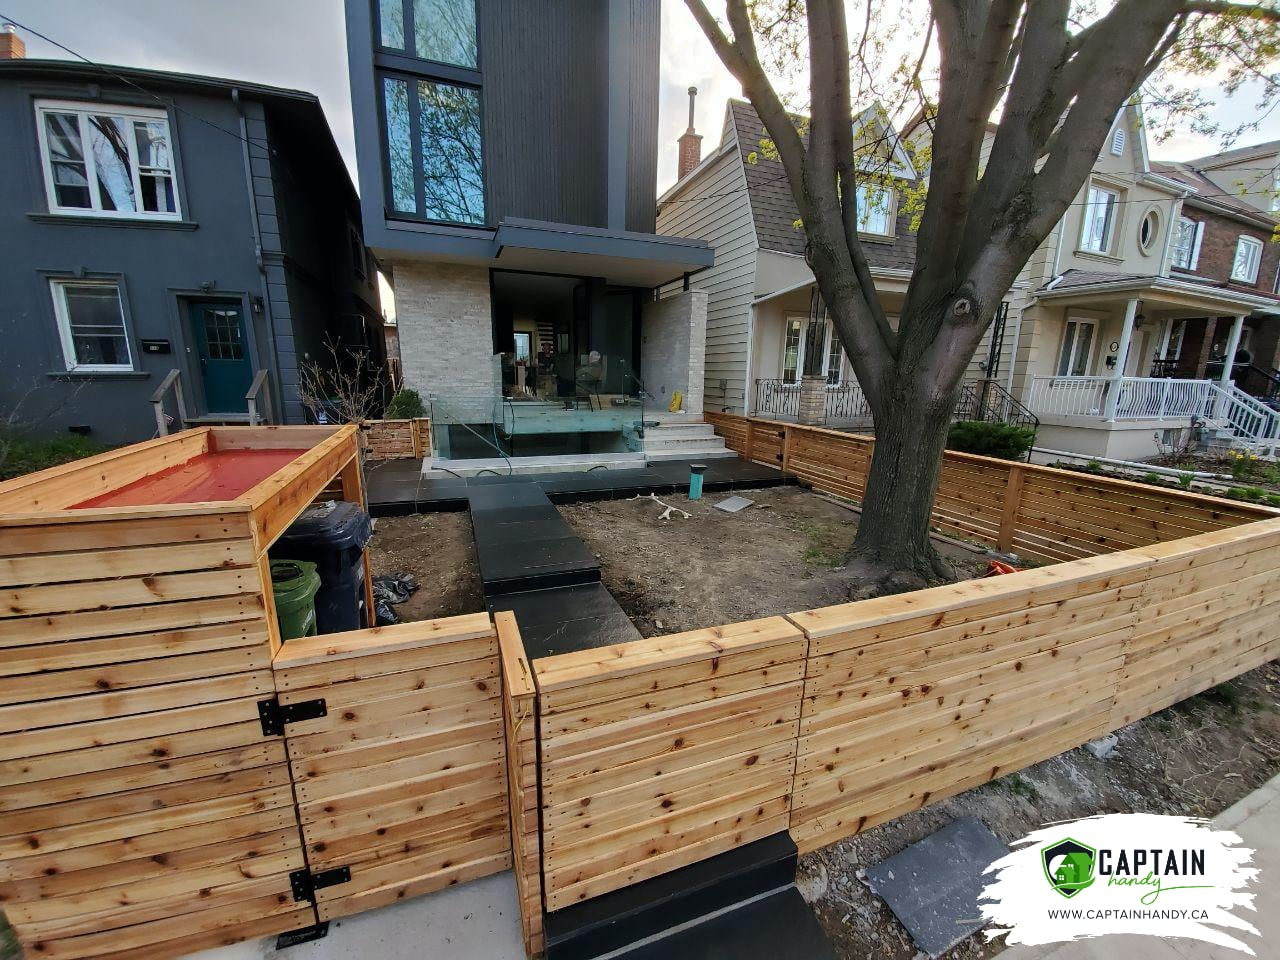 Backyard Renovation in North York